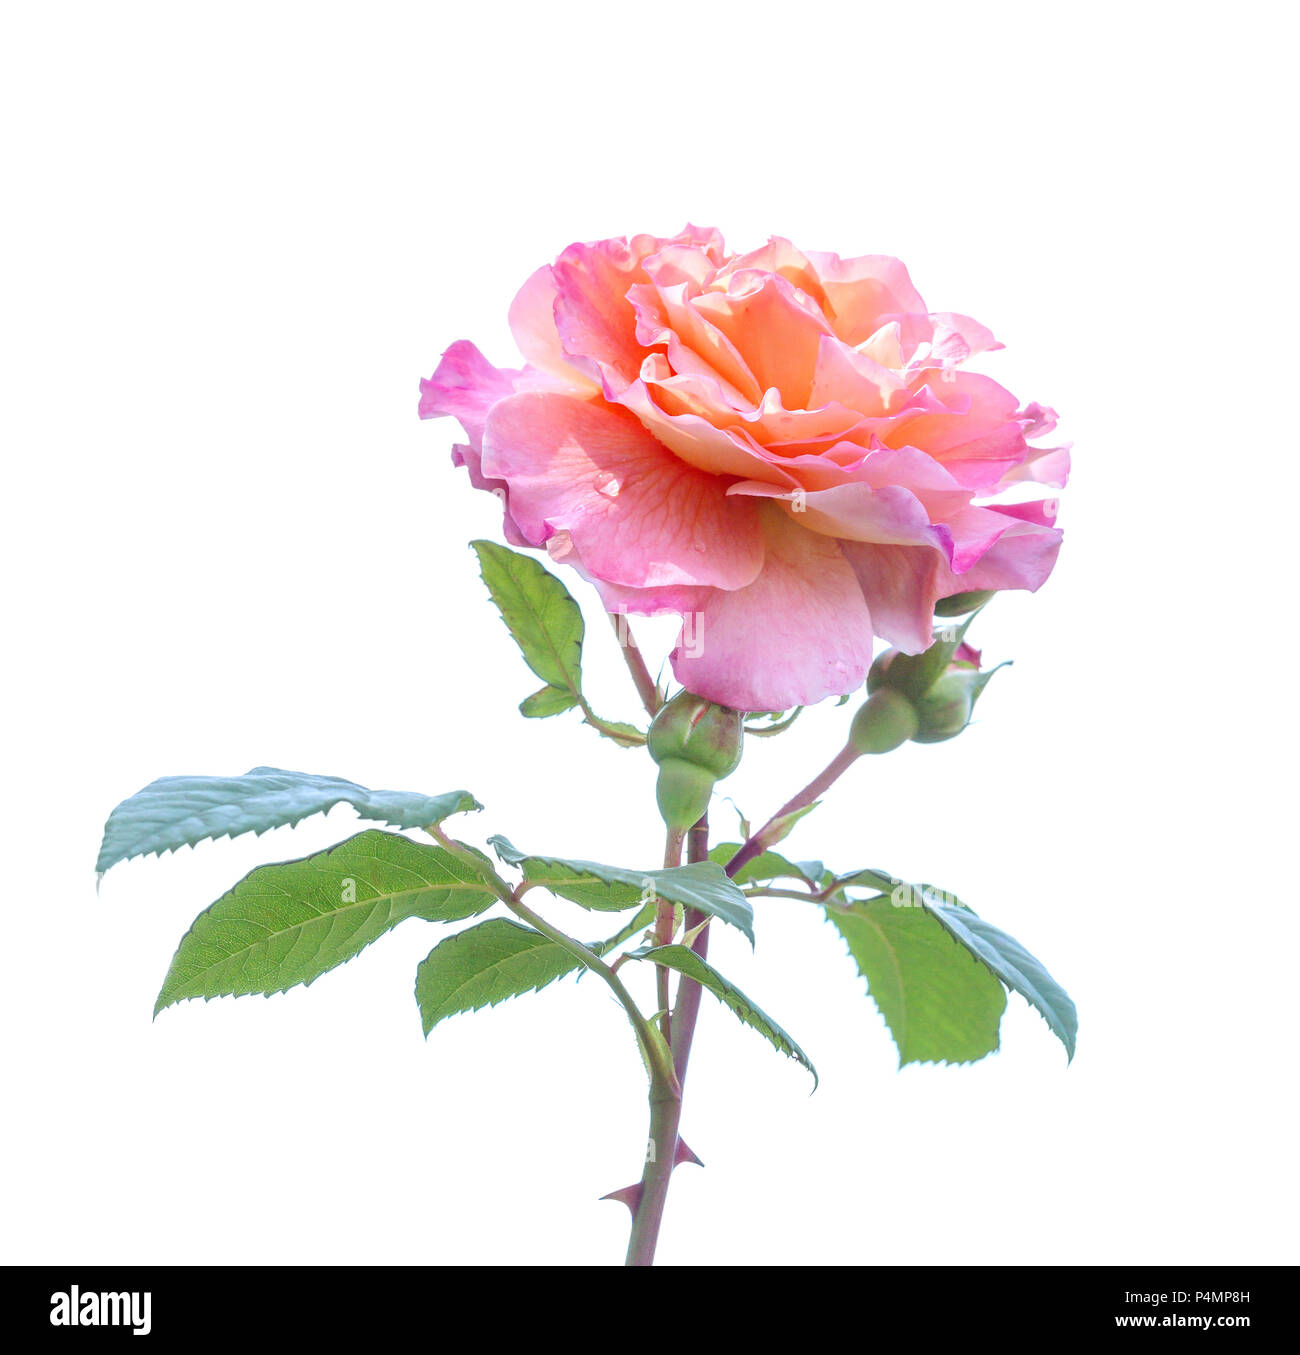 Beautiful Rose Flowers Bunch Of Pink Rose Blooming Isolated On